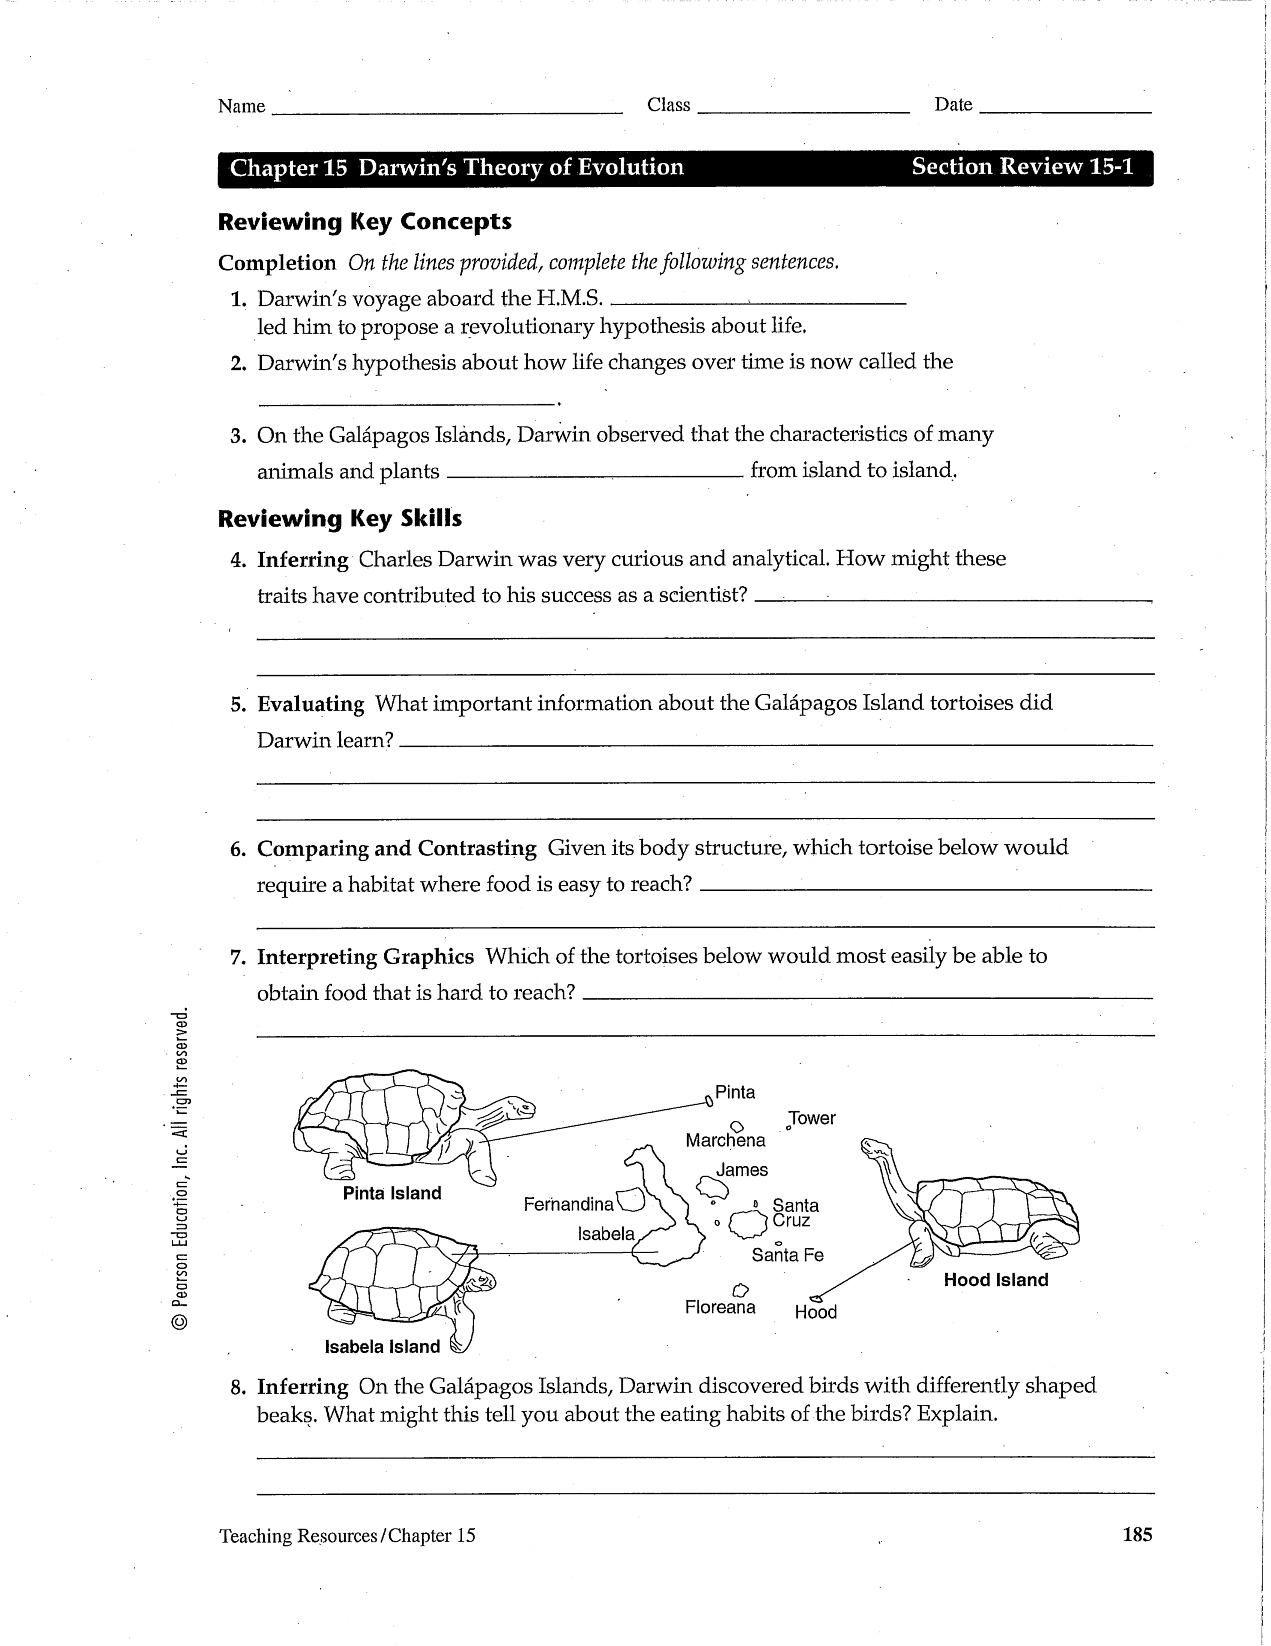 Darwin's Theory of Evolution Worksheet | Chapter 15 Darwin's ...